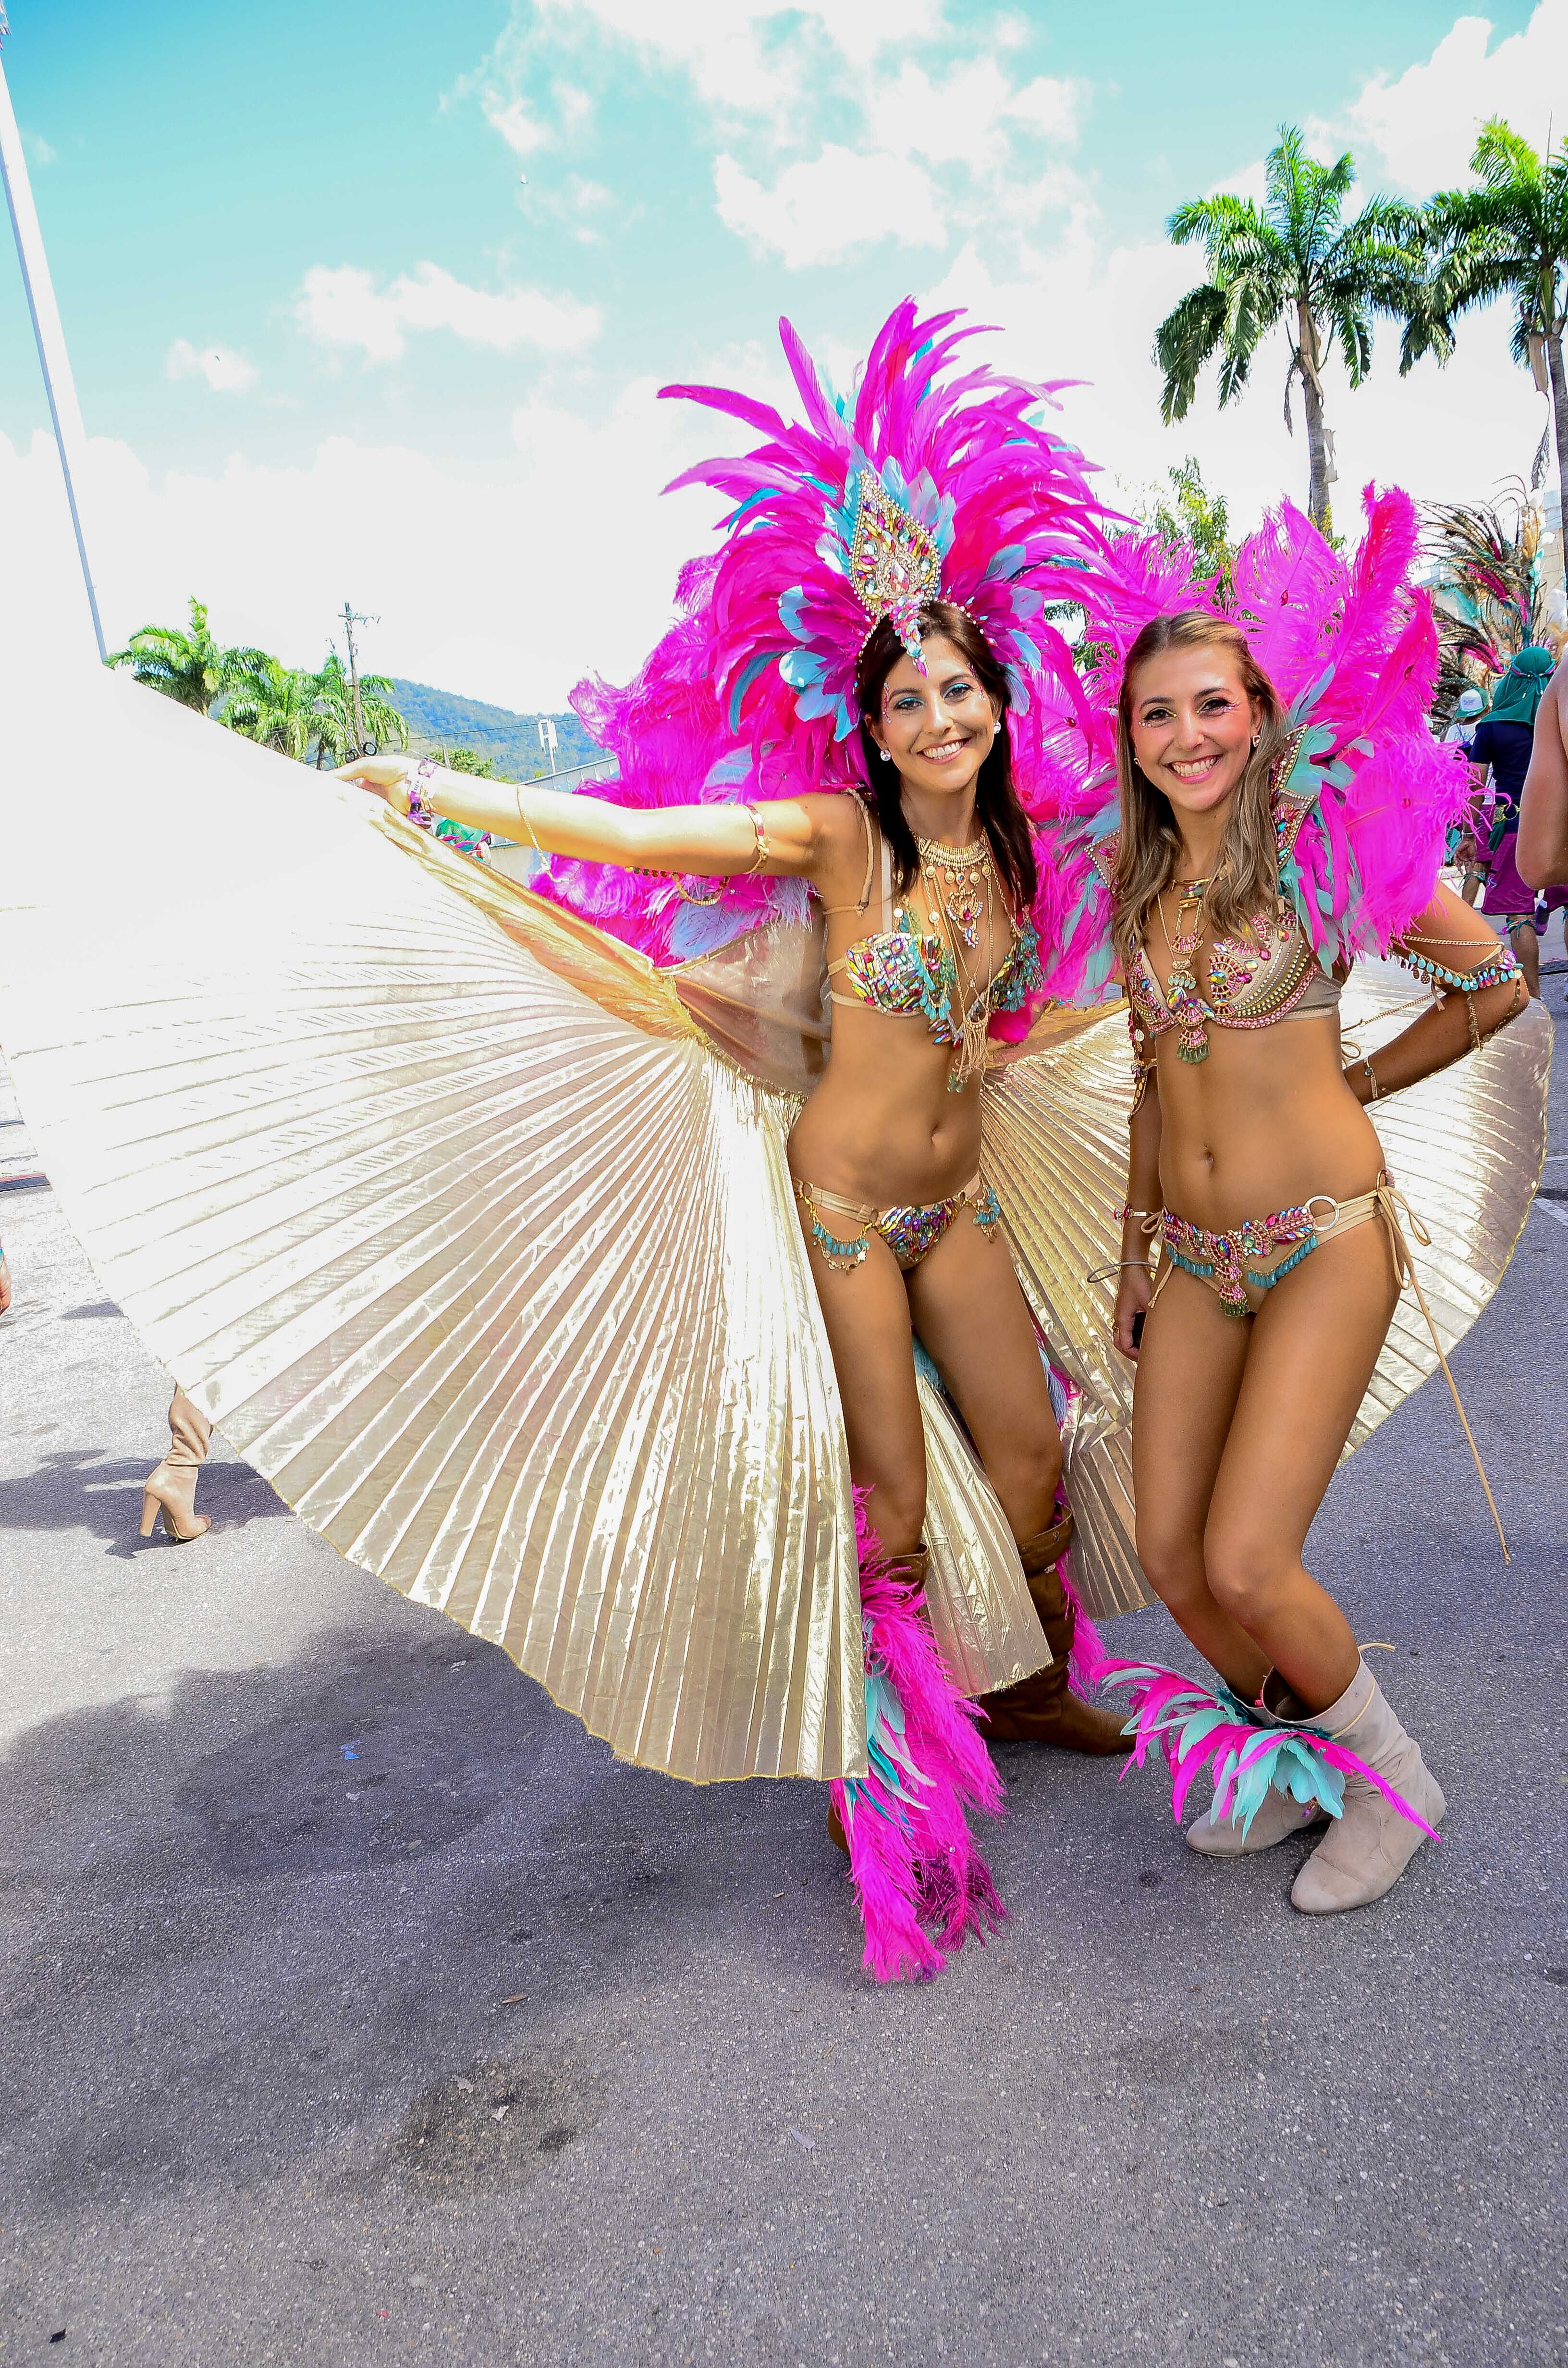 Carnival in Trinidad with two girls in feathered costumes